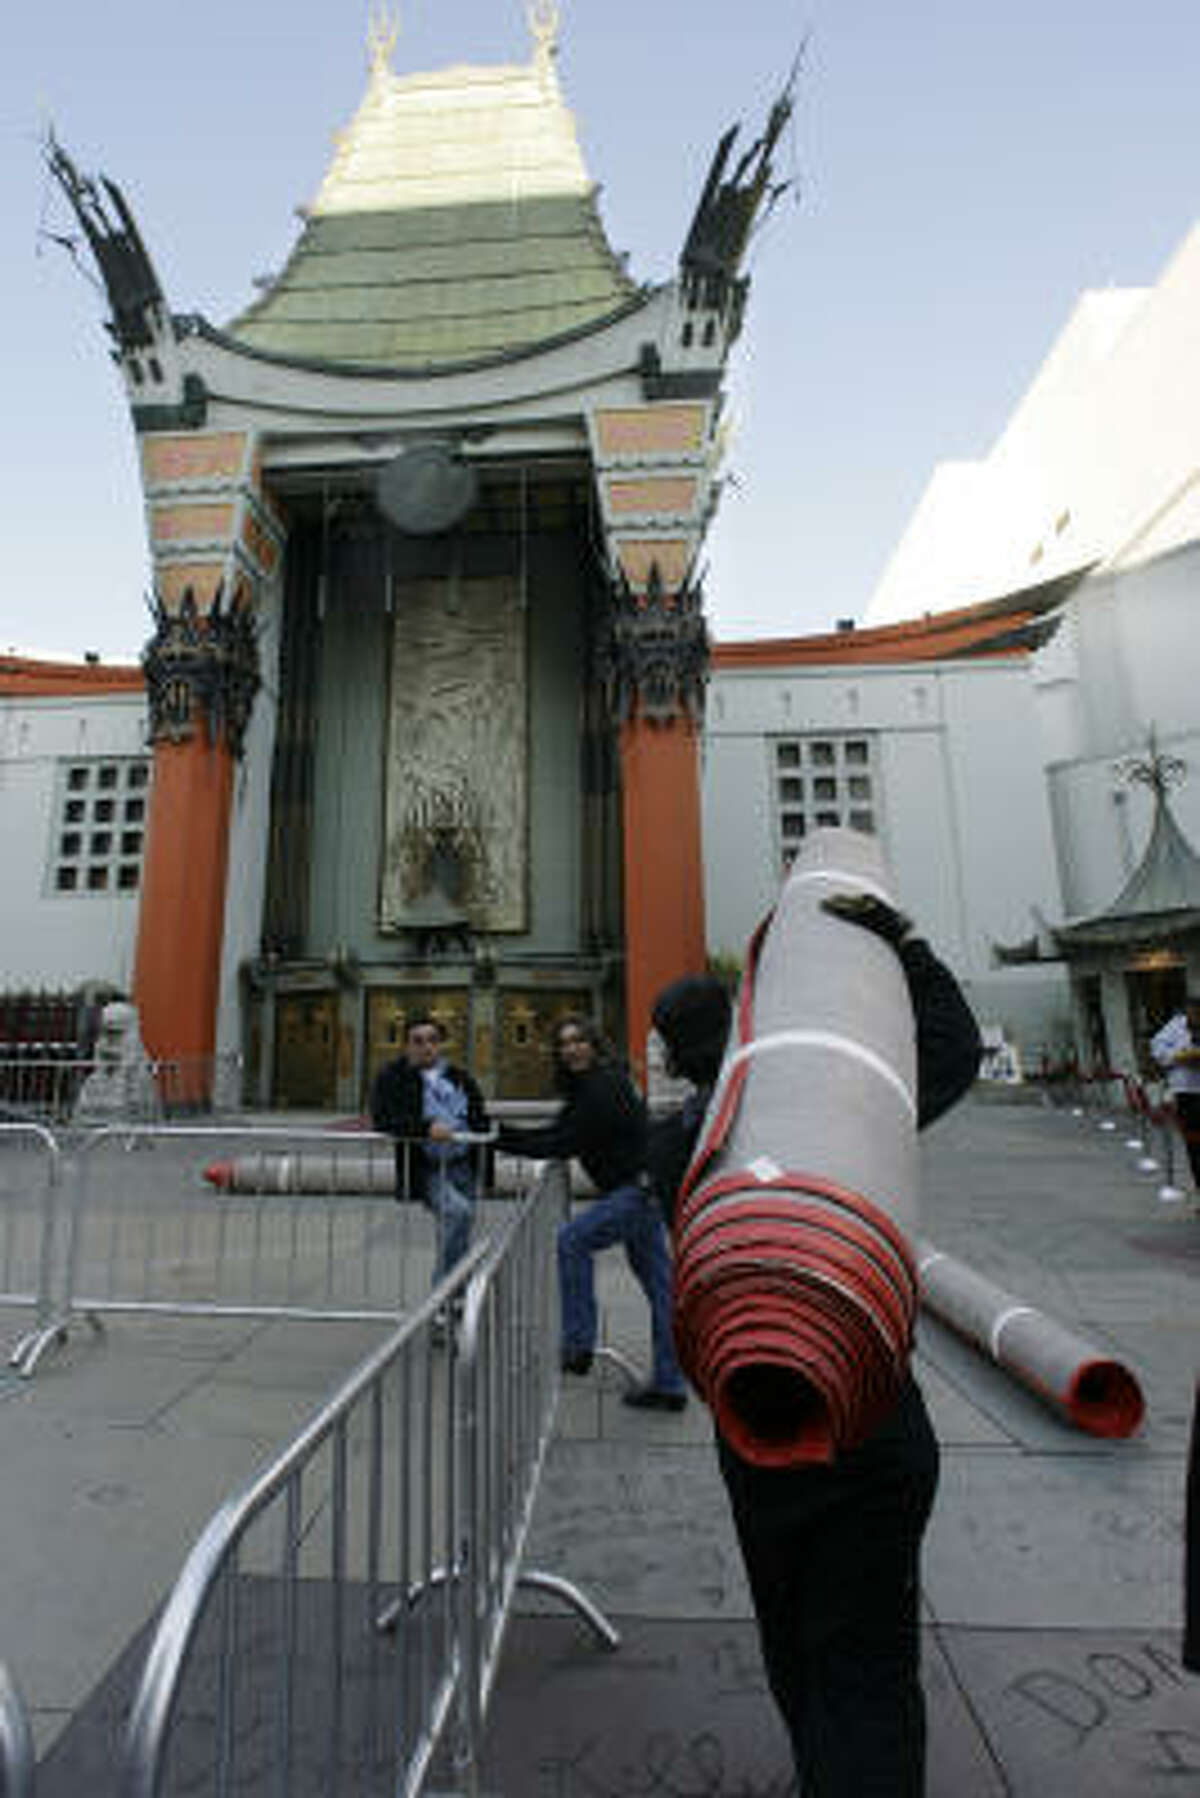 Workers haul in red carpet before a movie premiere outside the Grauman's Chinese Theatre.